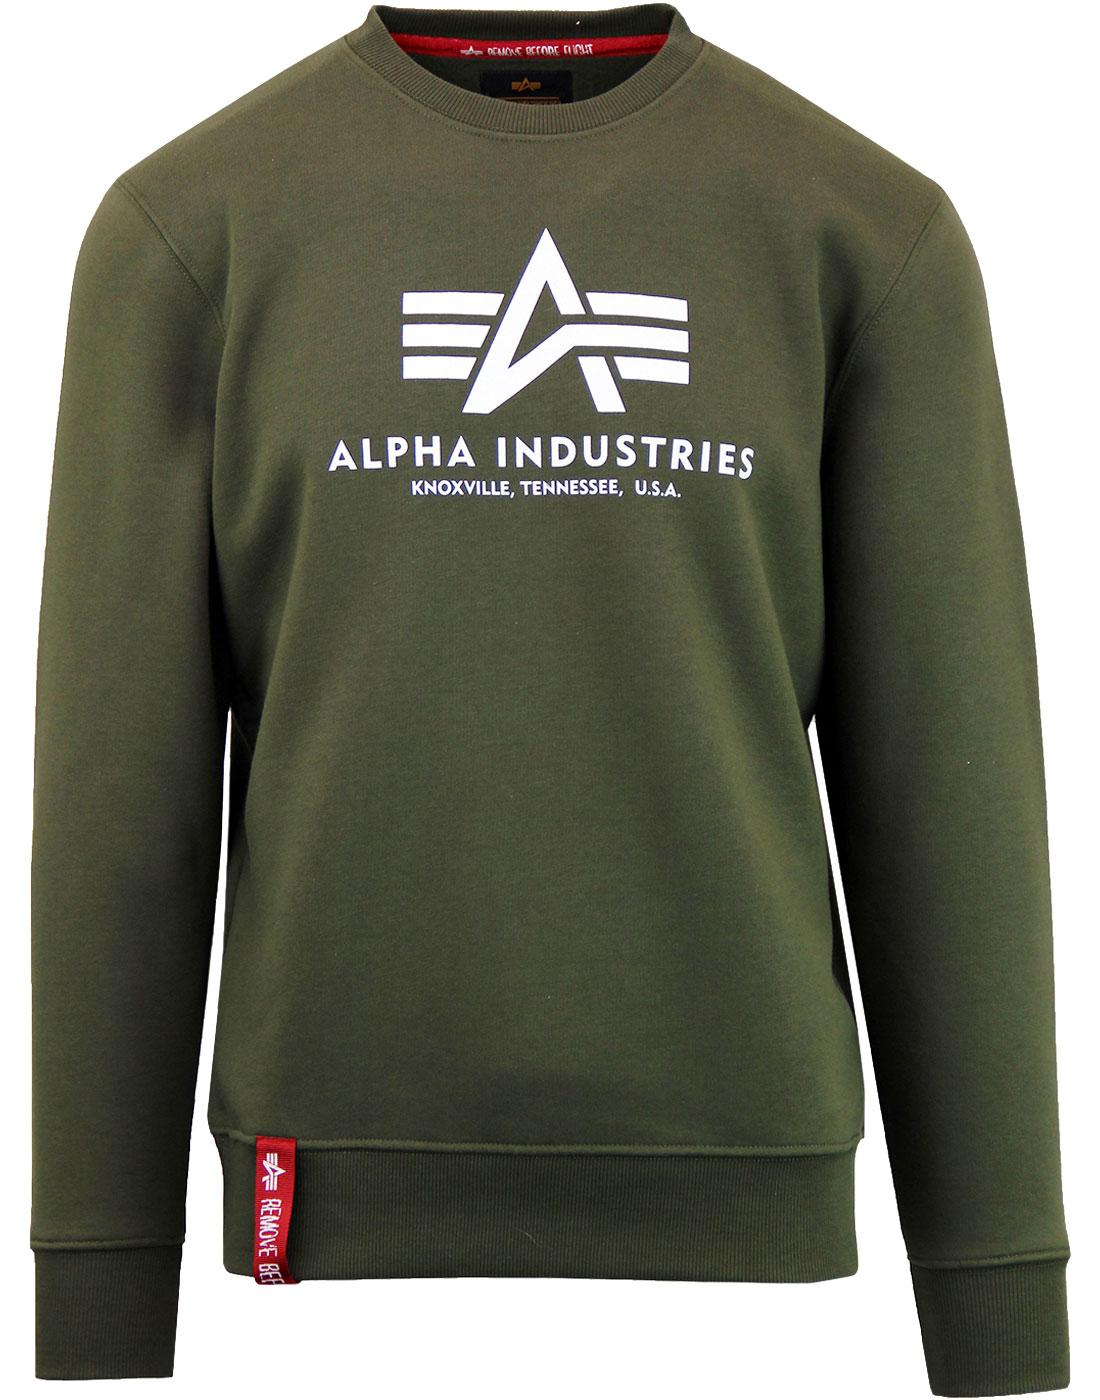 ALPHA INDUSTRIES Men's Military Basic Sweater DG